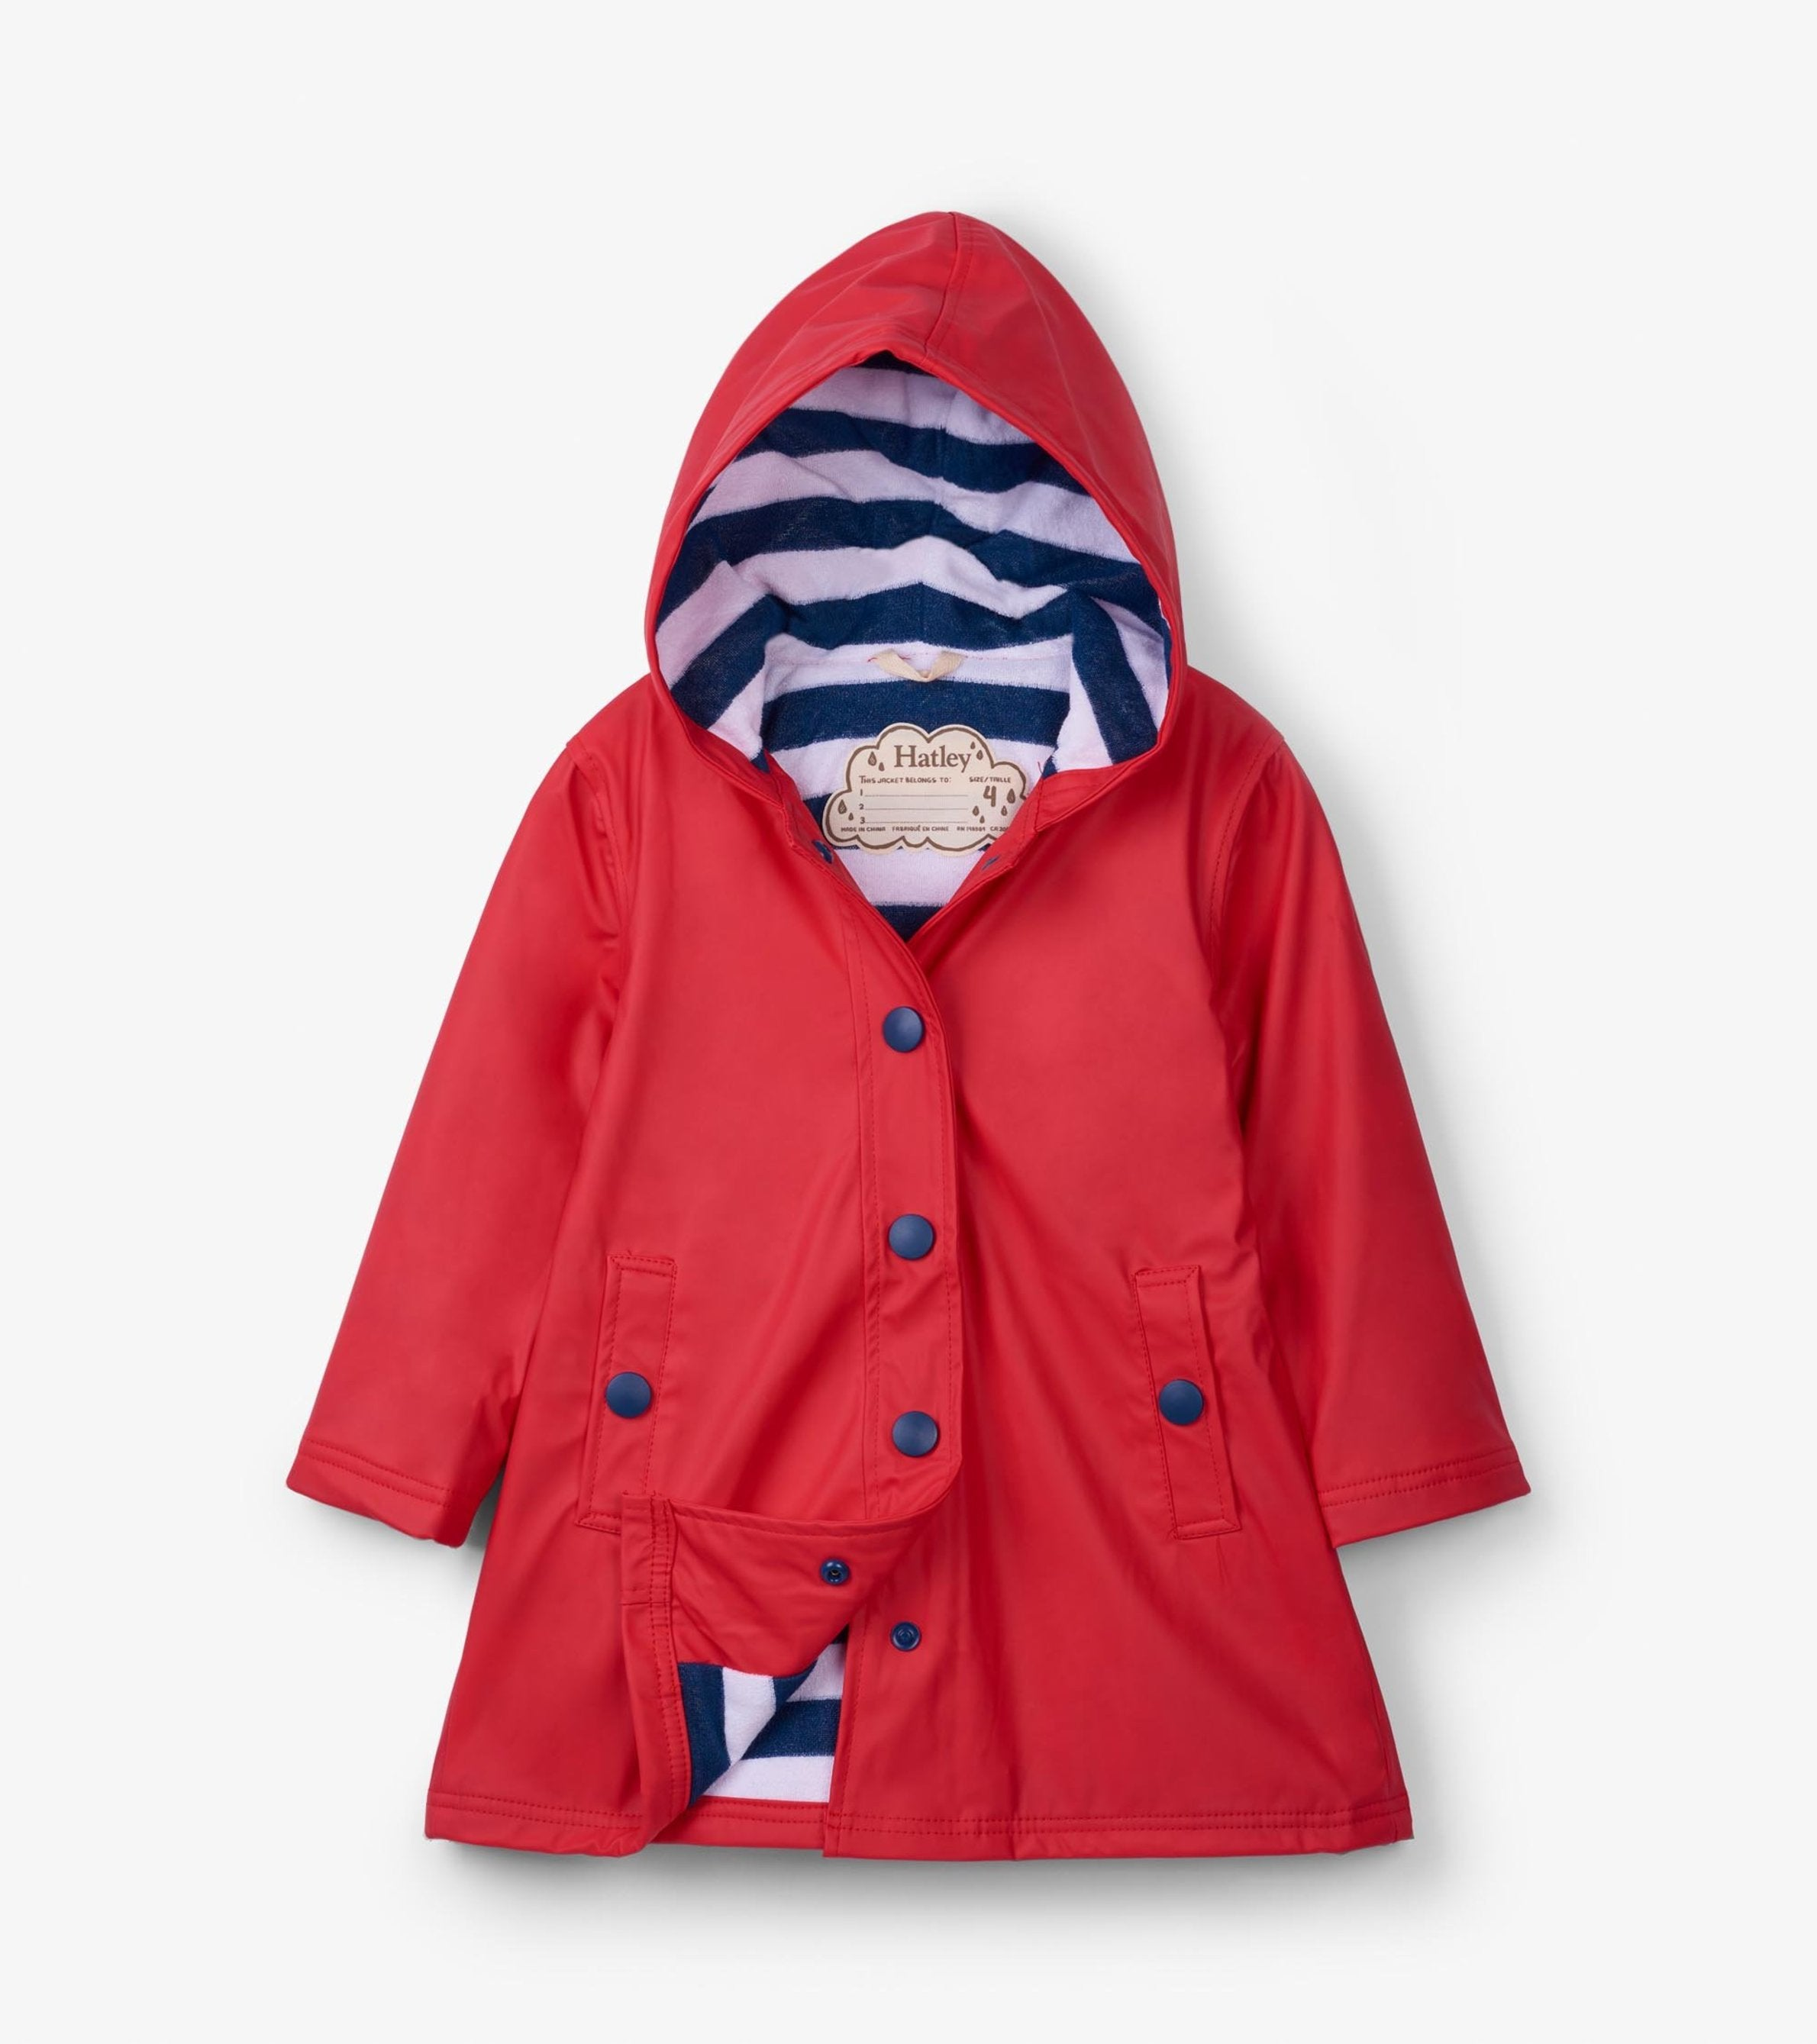 Hatley Splash Jacket